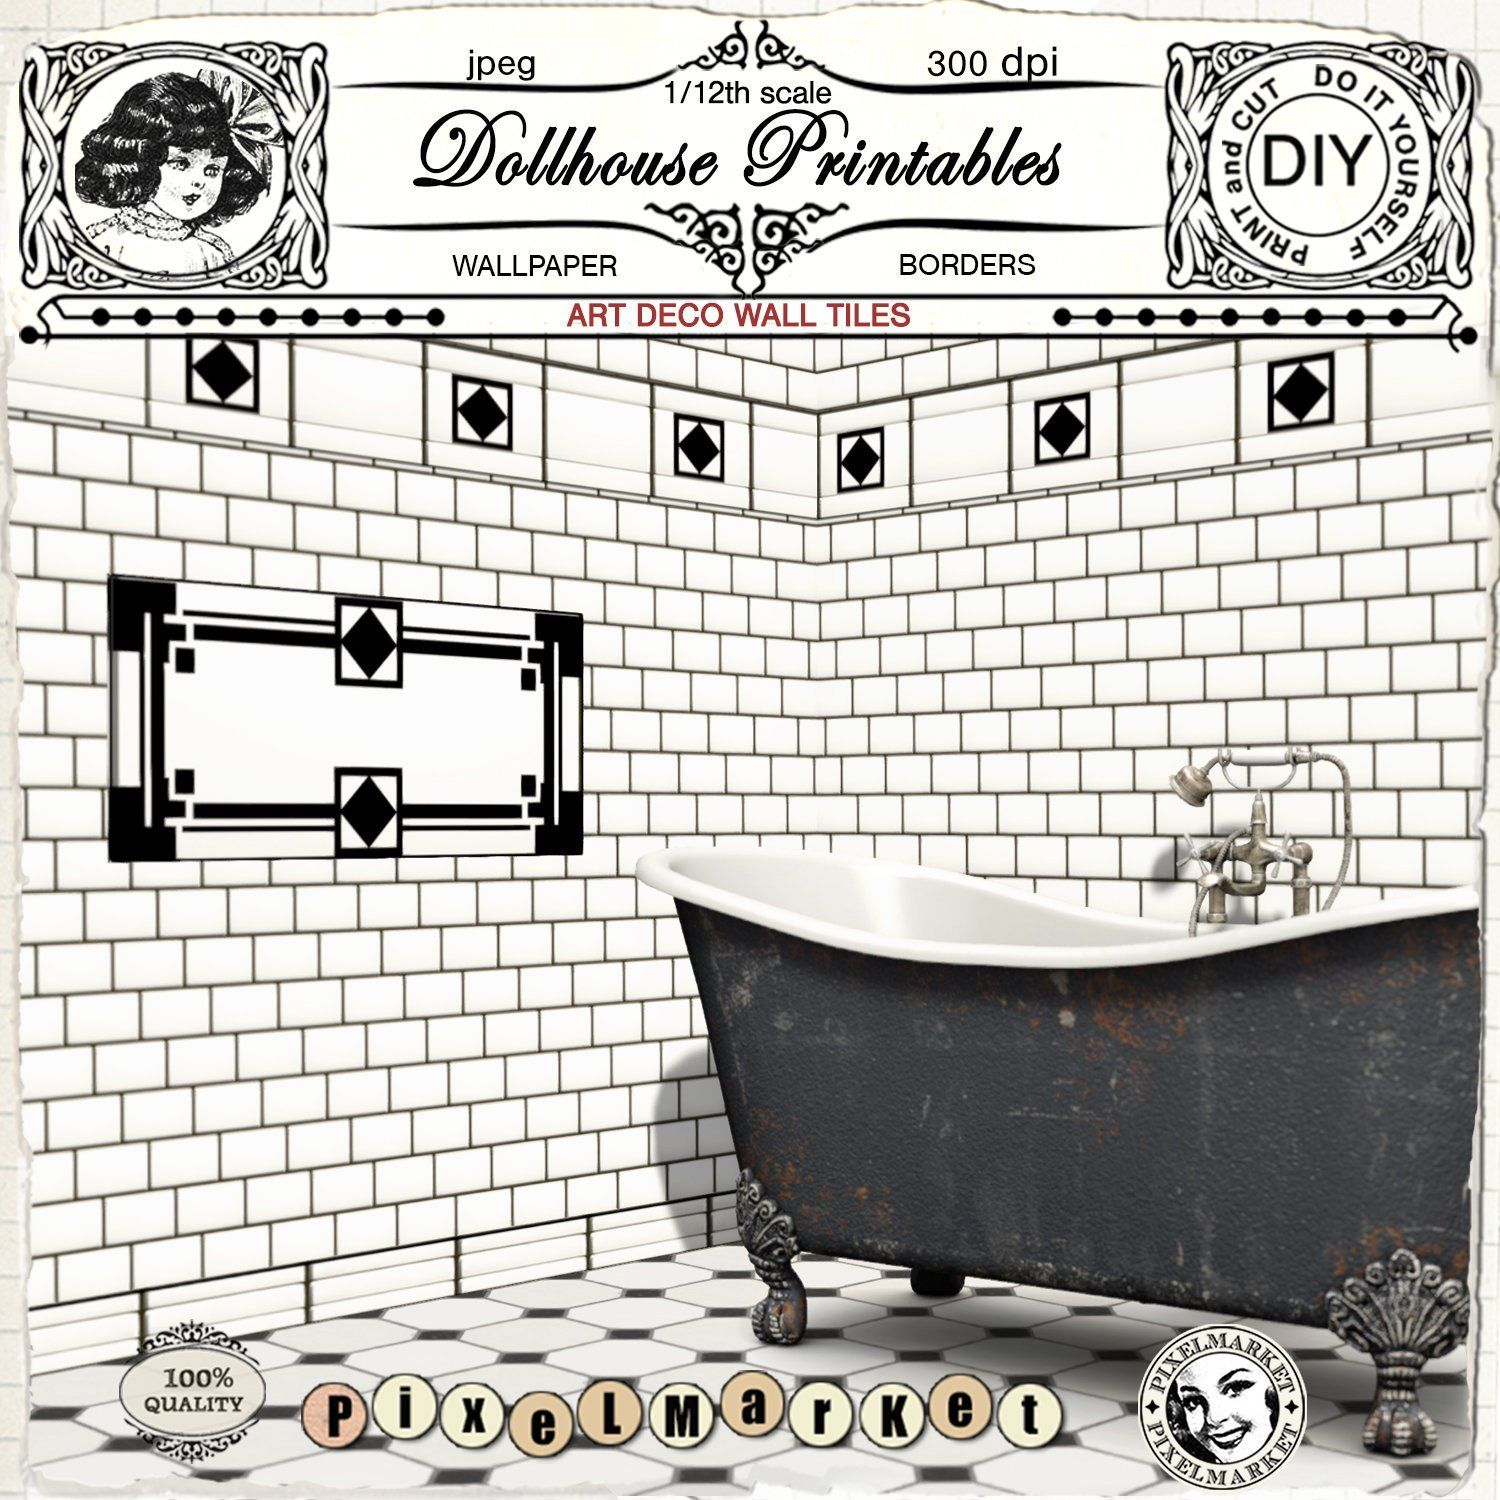 ***NEW*** Dollhouse Miniature Vintage Bathroom sign 1:12 FUNNY black and white